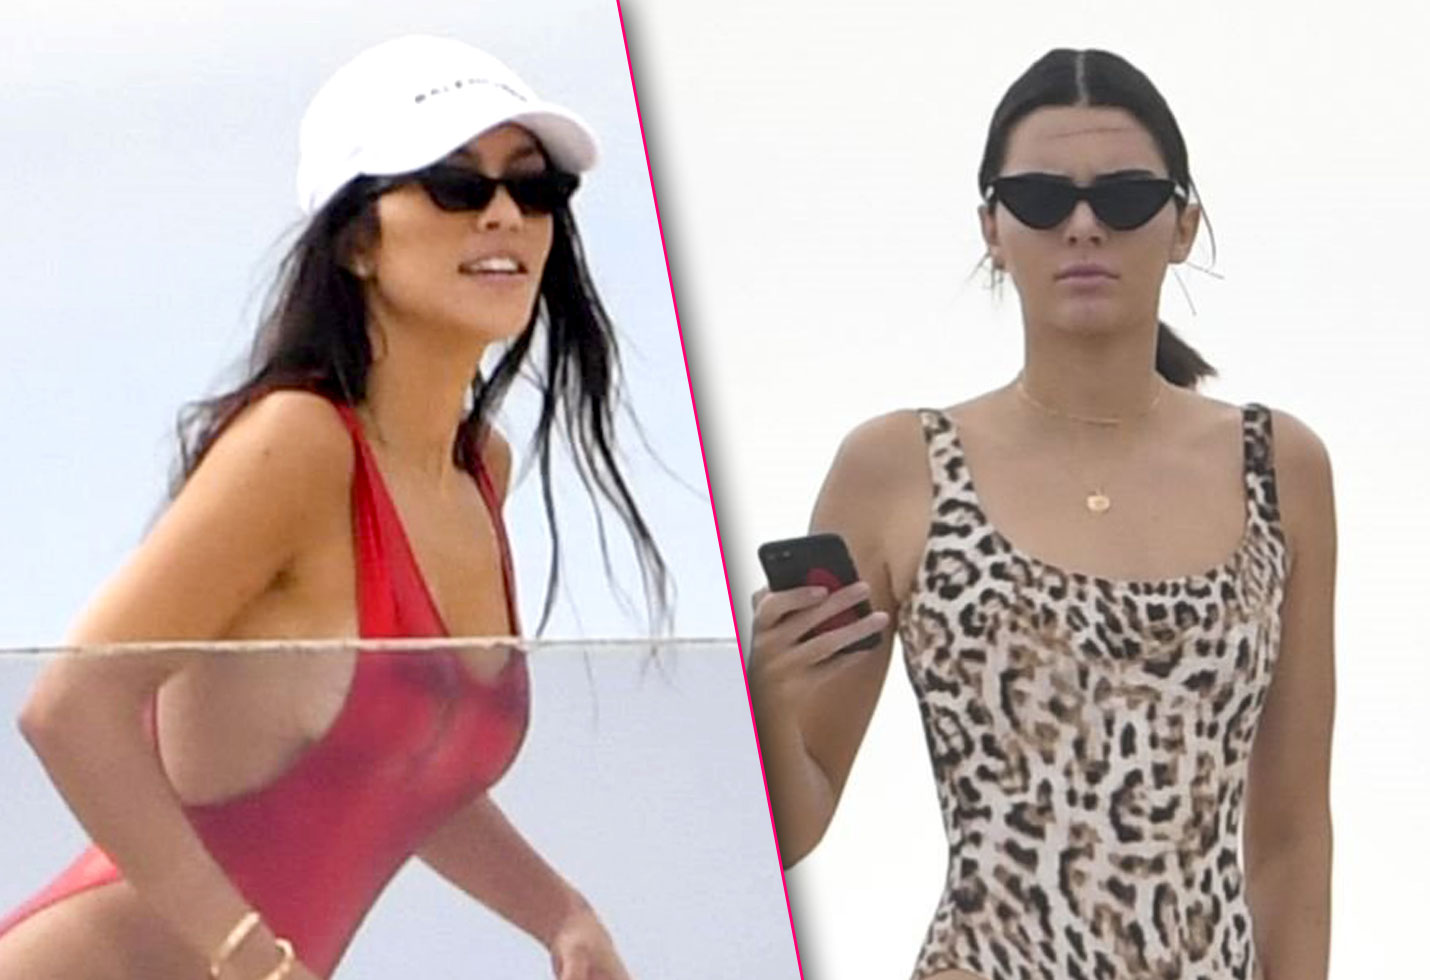 Kendall jenner kourtney kardashian cannes swimsuit butts